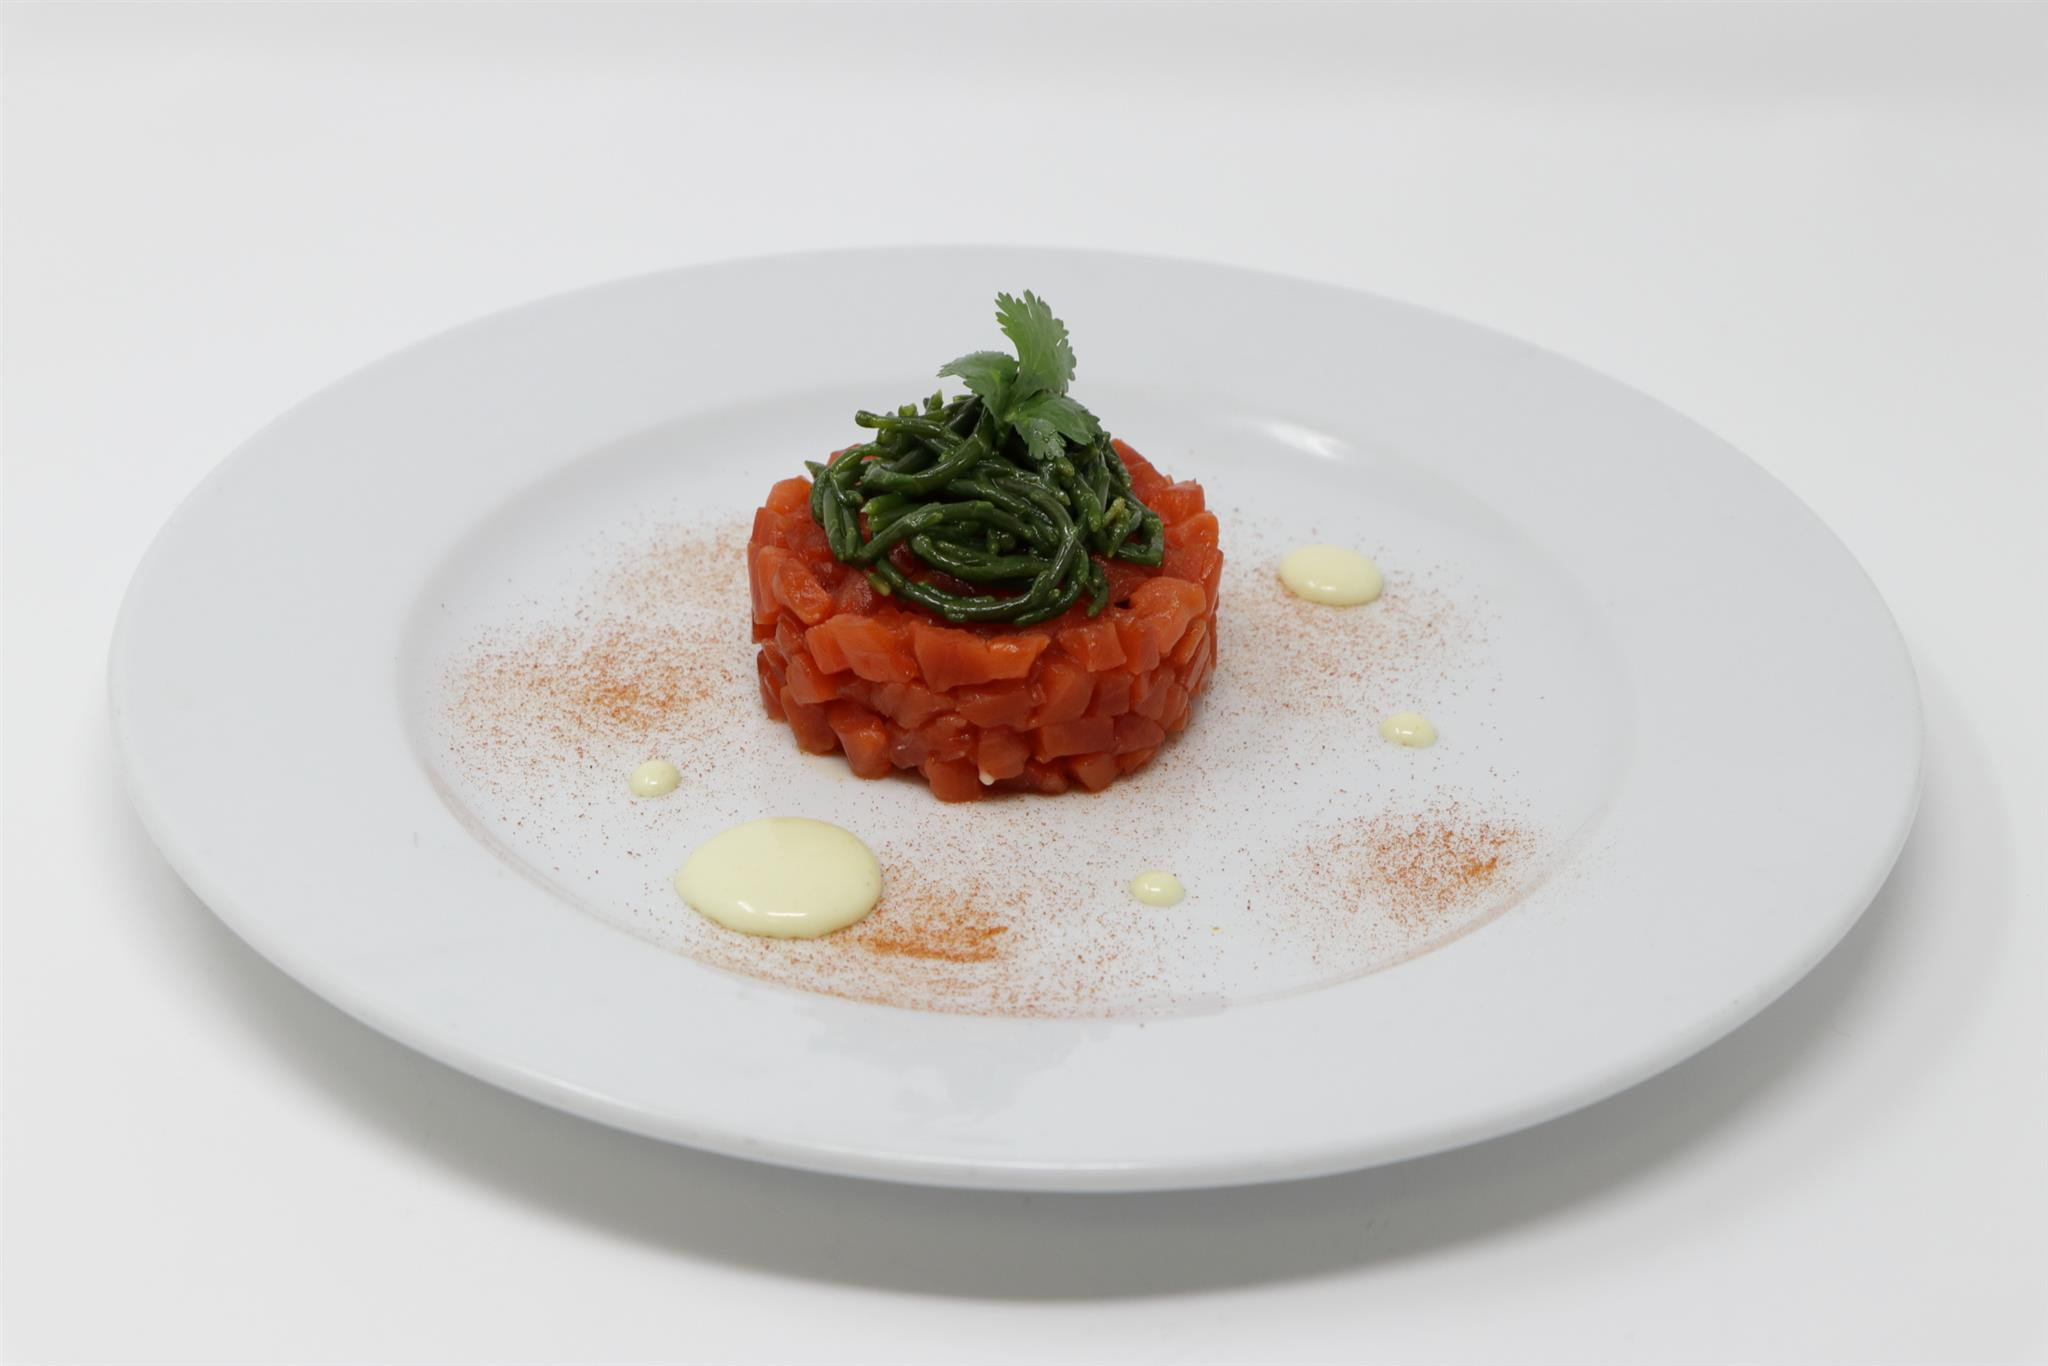 daruma-seasons-chef-barbieri-estate-2018-battuto-salmone